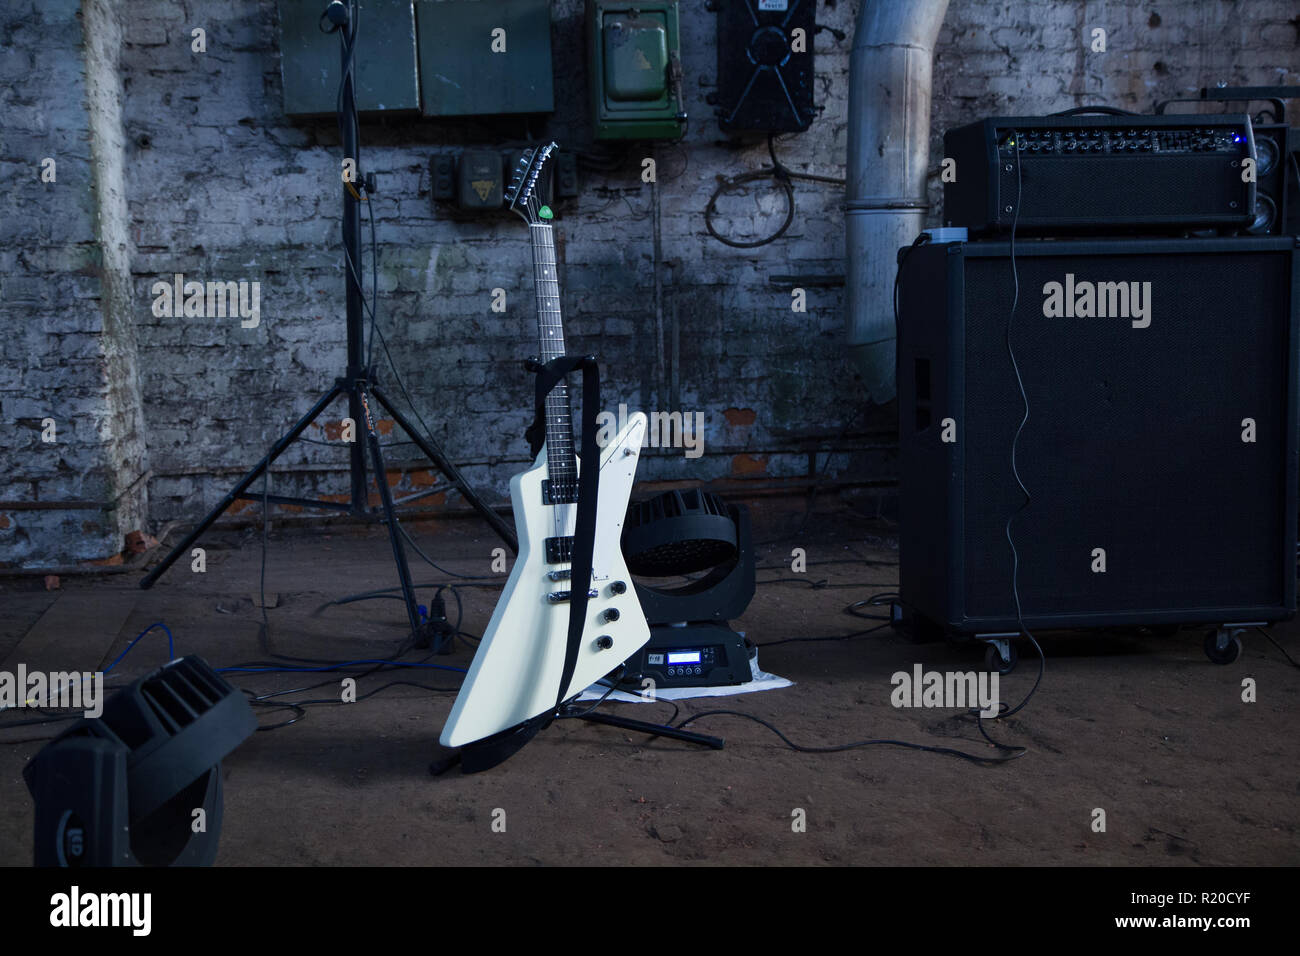 White electric guitar and amplifier on a industrial background. - Stock Image